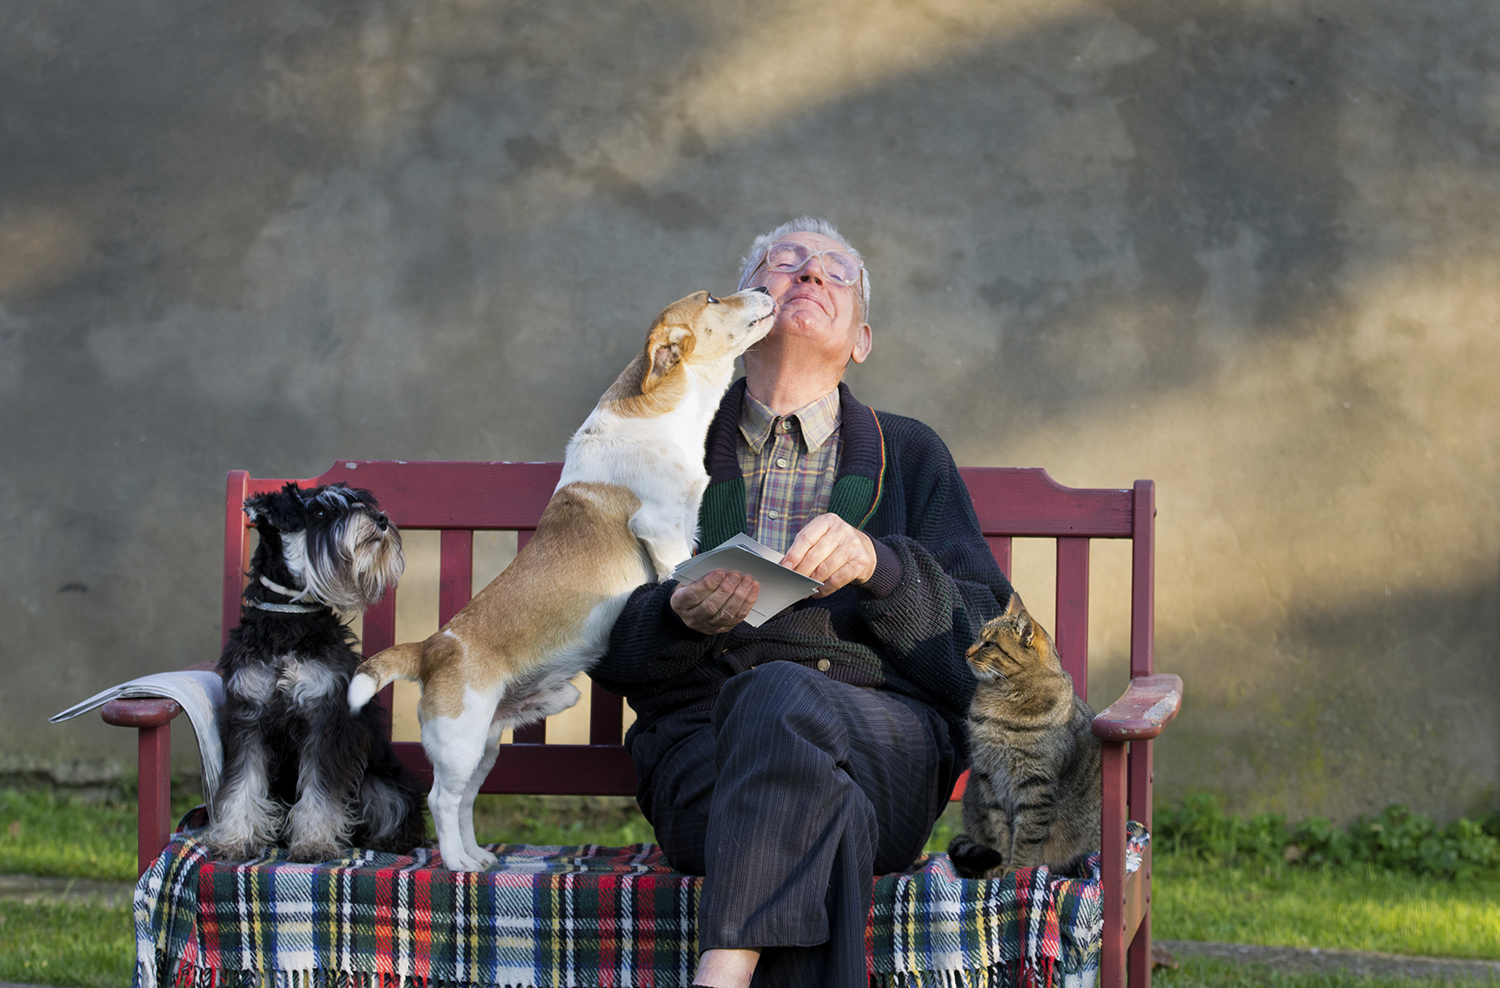 we deliver love  seniors with pets have 21% less doctor visits. we feed pets too